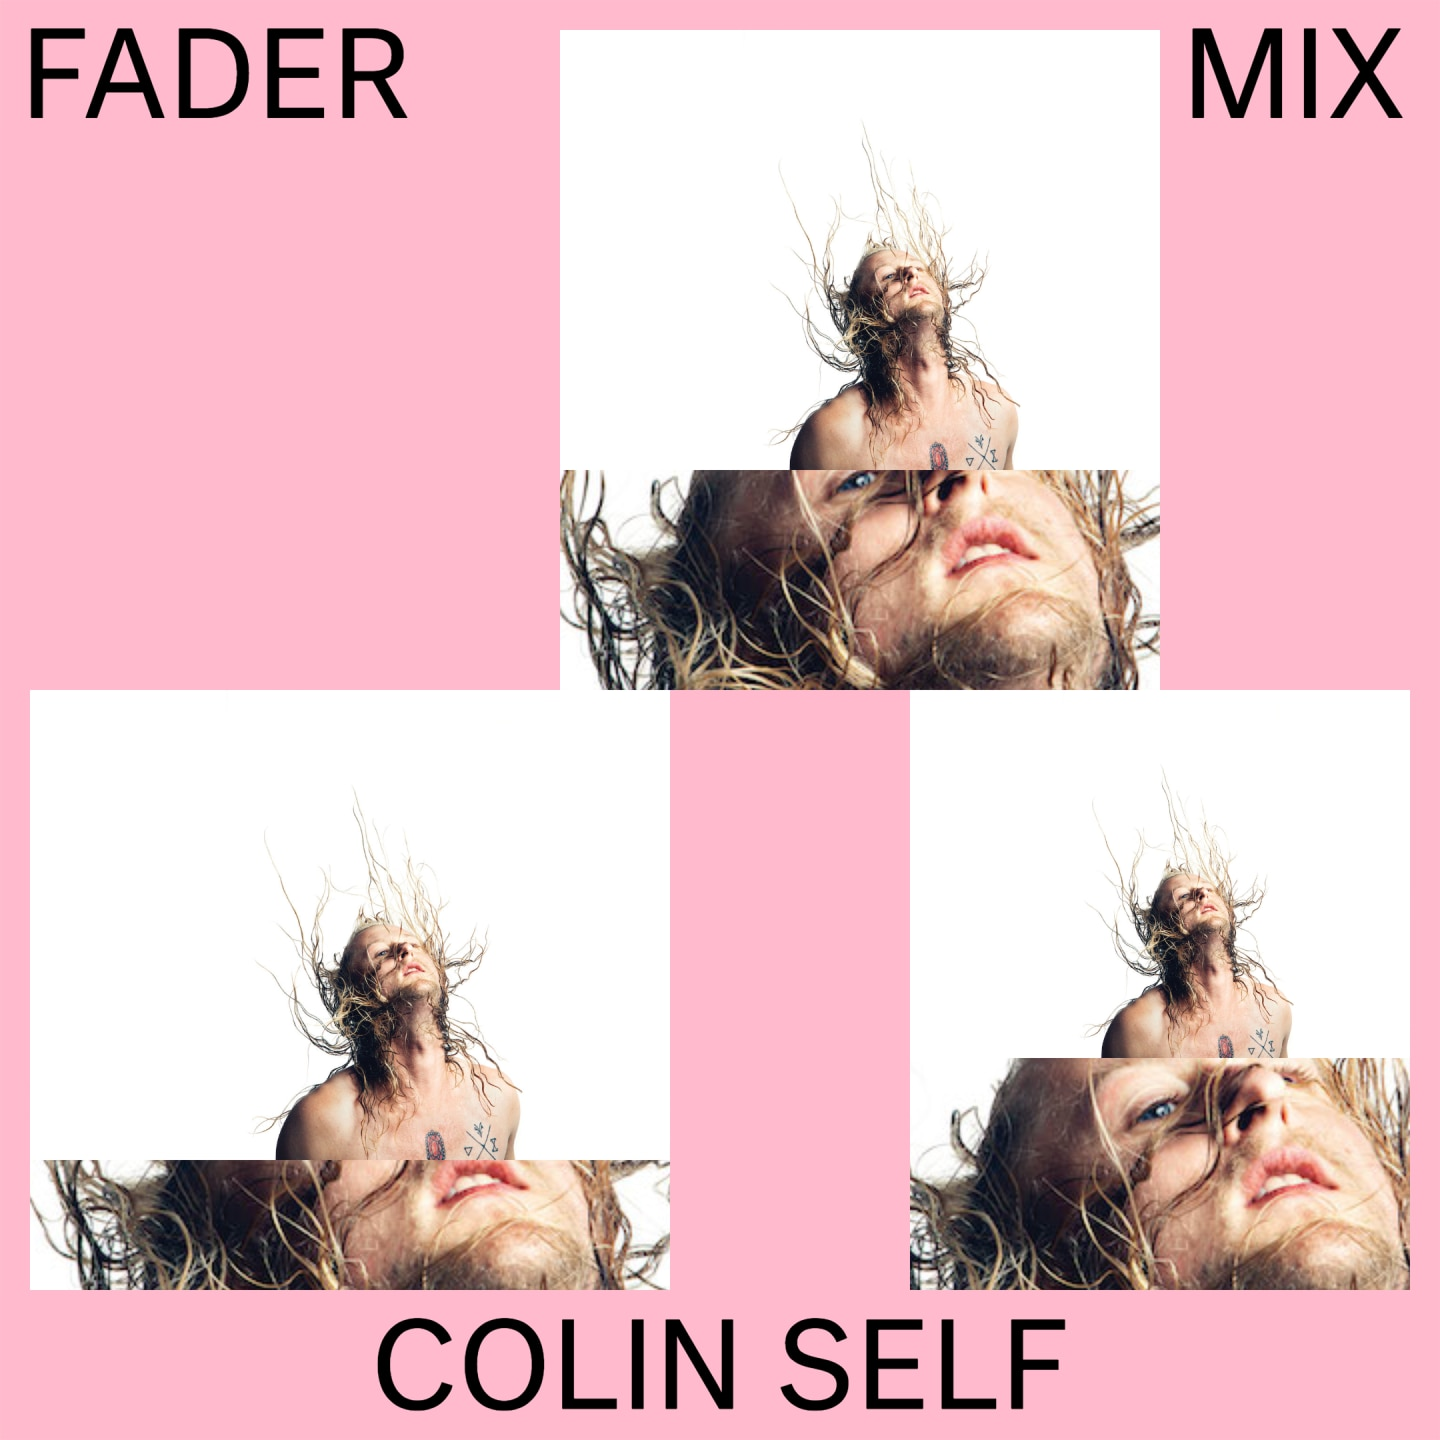 Listen to a new FADER Mix by Colin Self